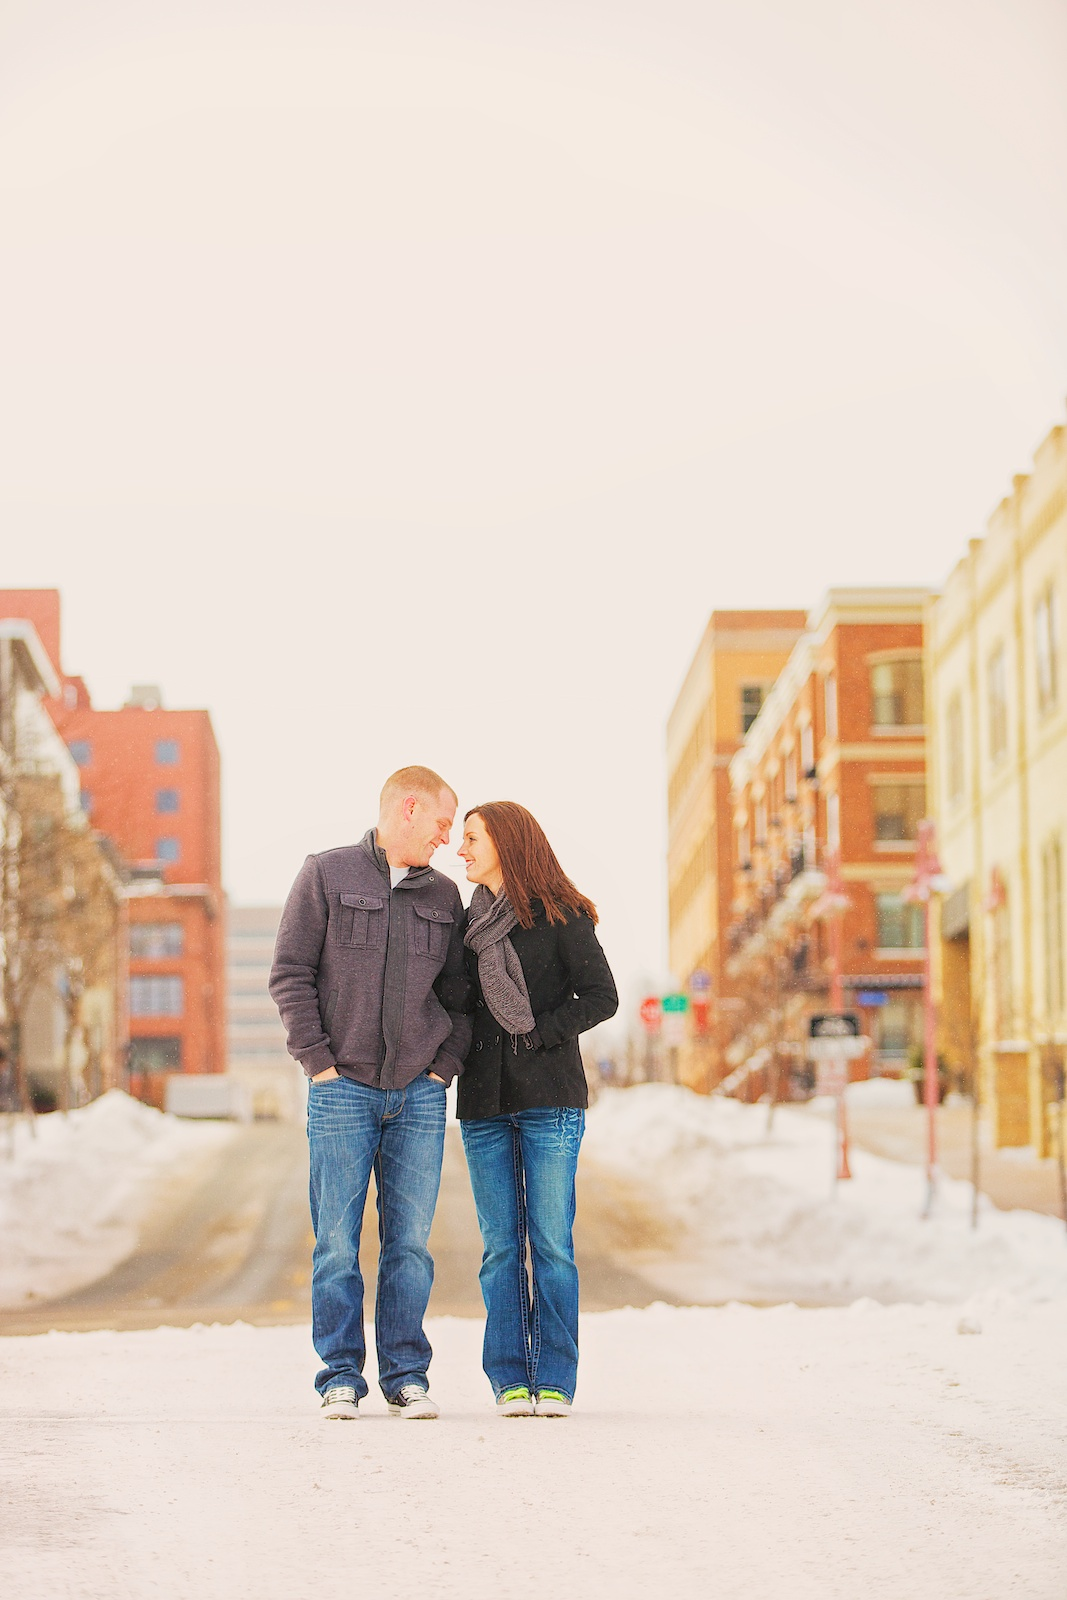 Minneapolis Winter Engagement Photos 4